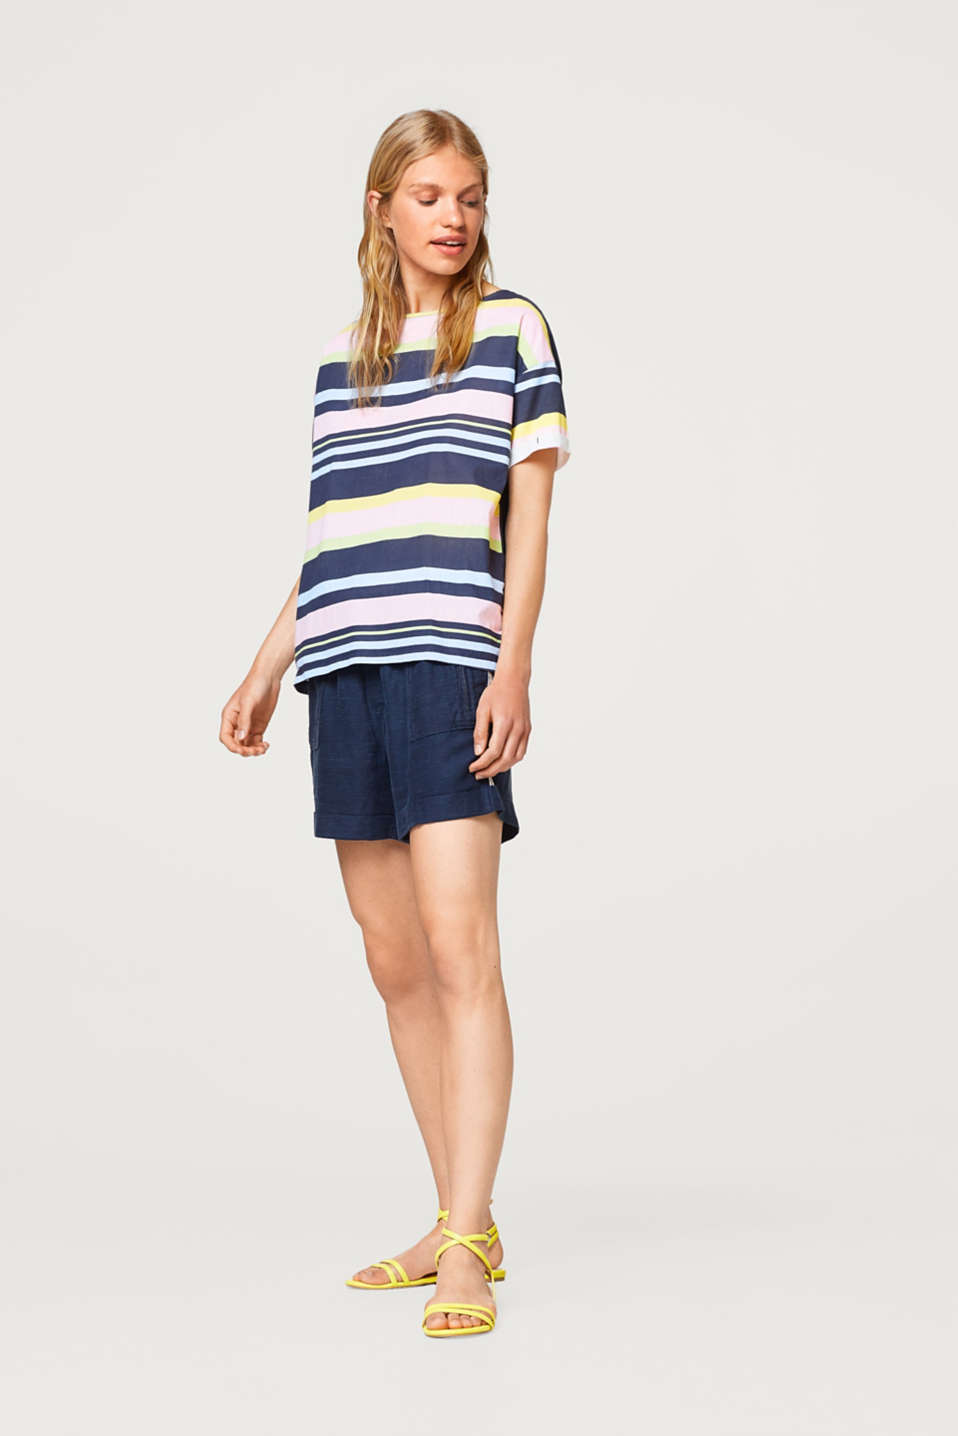 Jersey/fabric striped T-shirt in 100% cotton